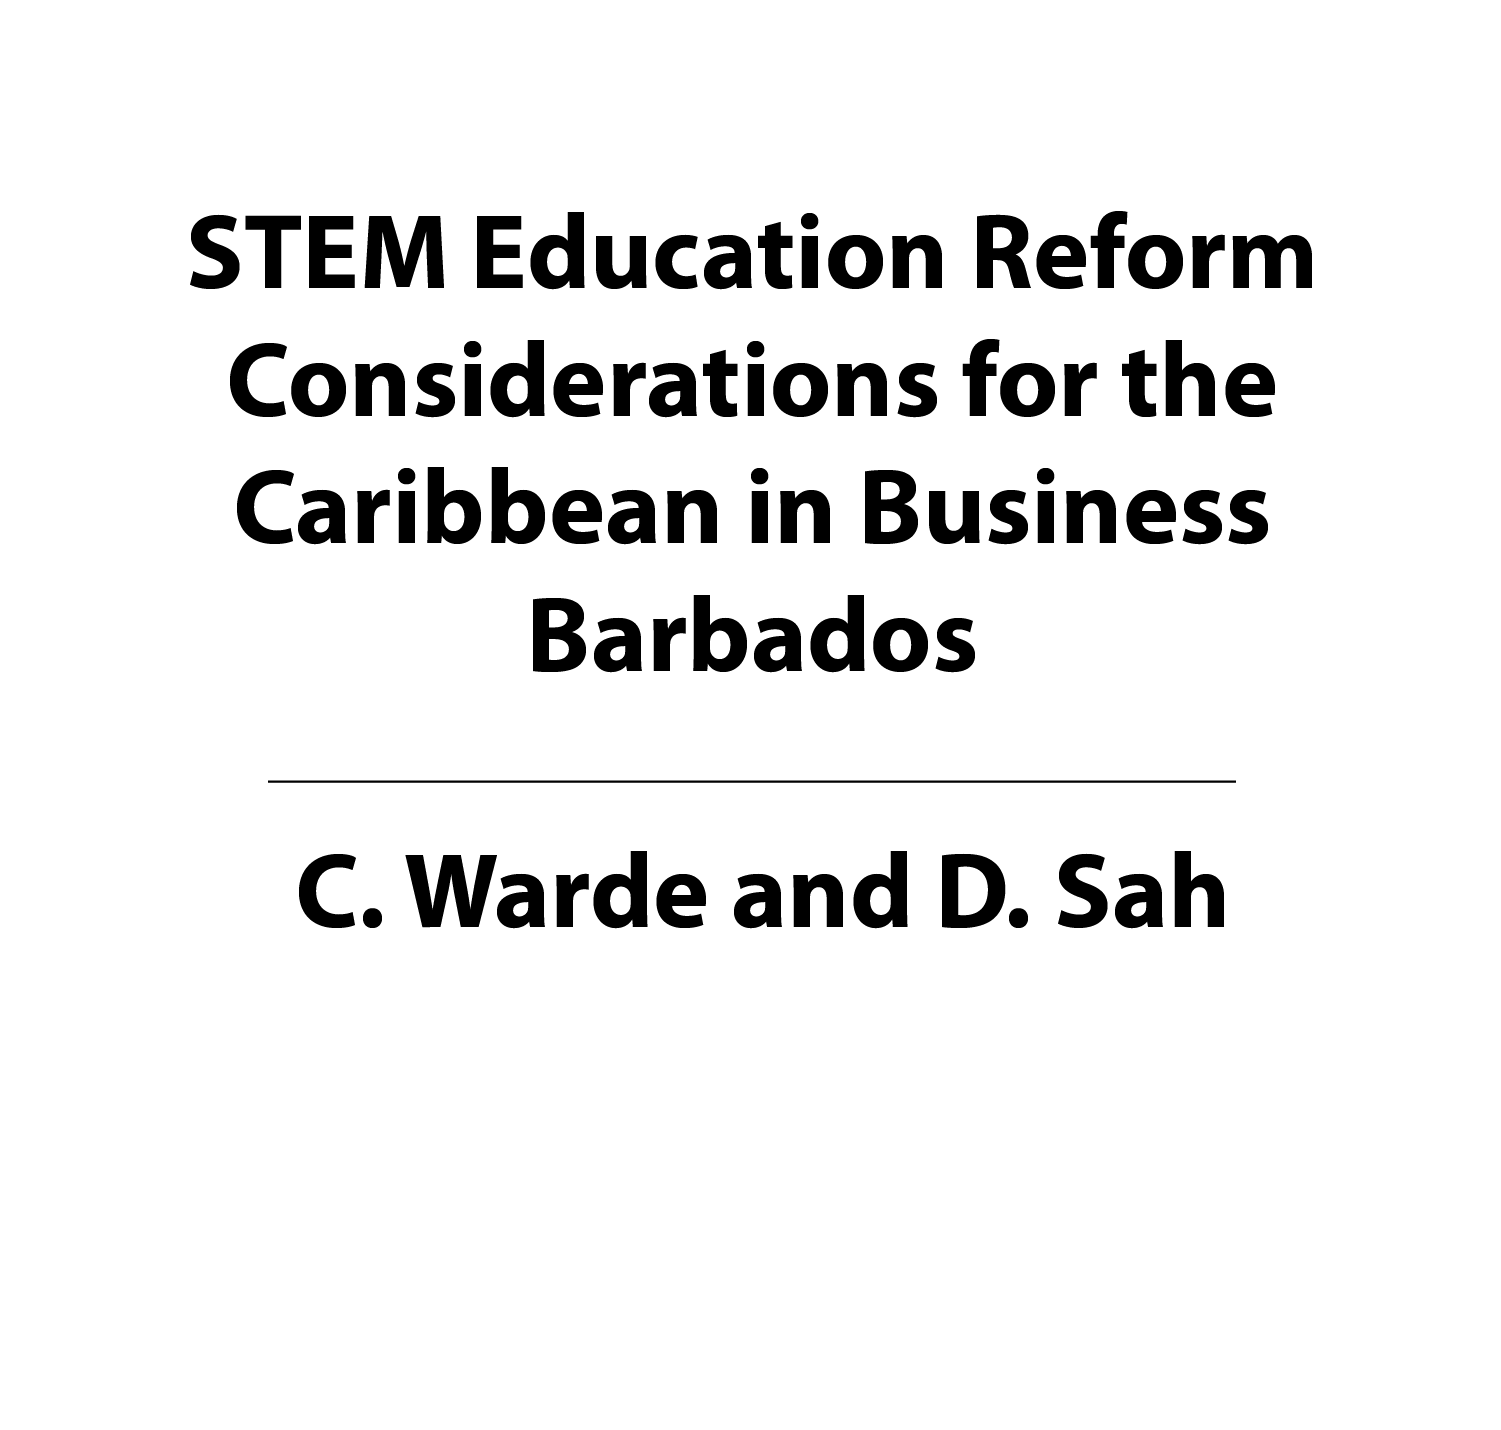 STEM Education Reform Considerations for the Caribbean in Business Barbados